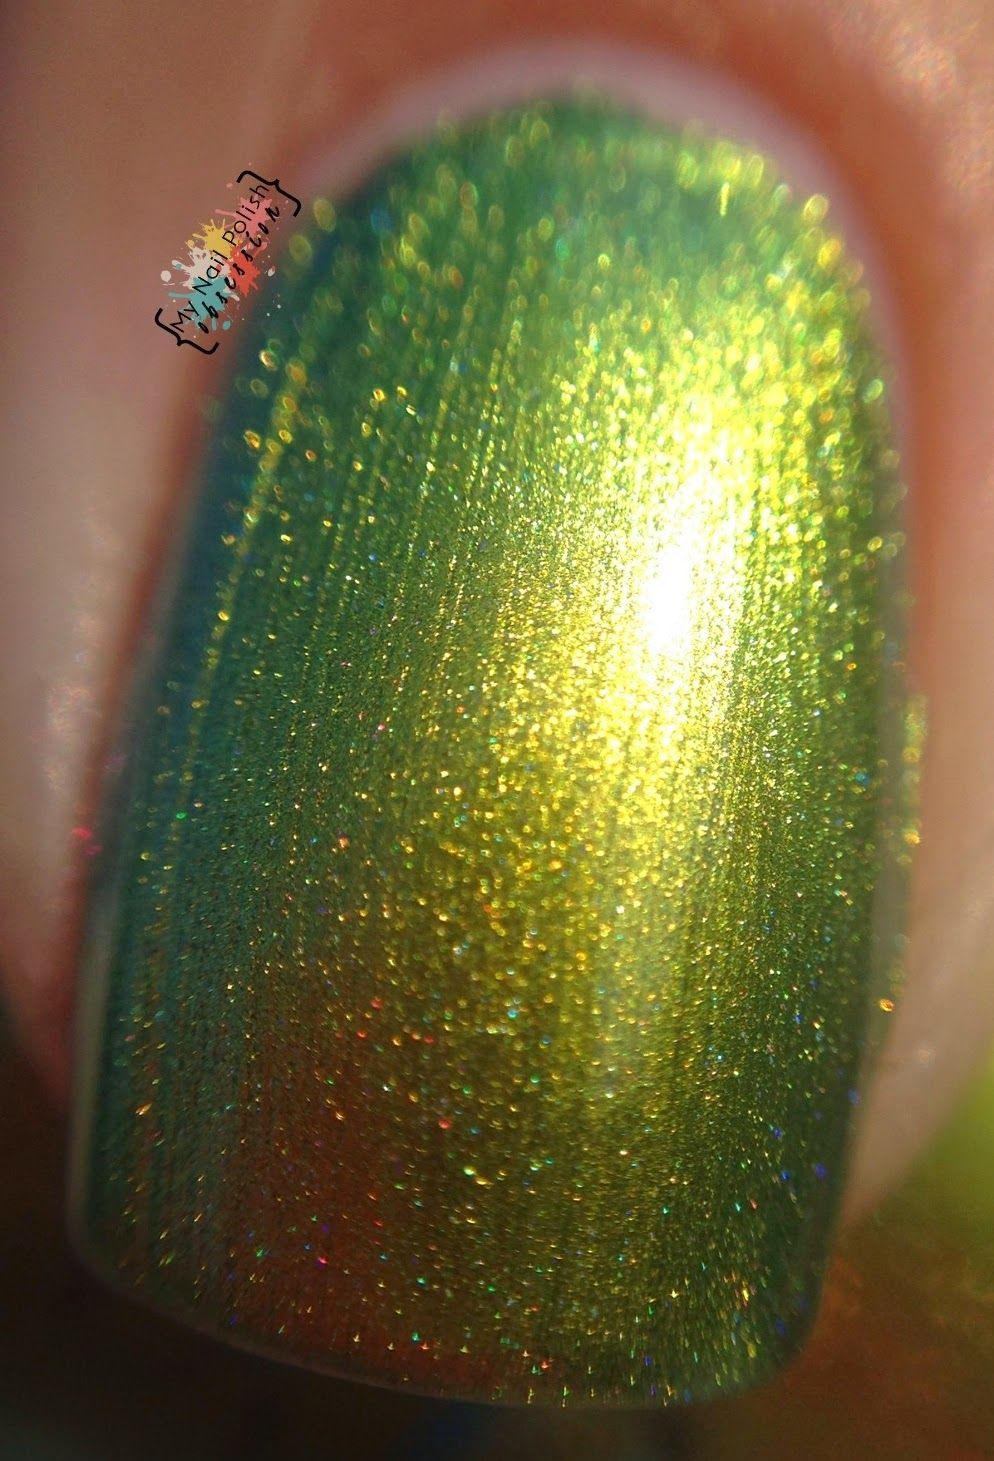 Nice Barry M Magnetic Nail Polish Thin Nail Art Using Scotch Tape Rectangular Nail Art Trends Remove Nail Polish From Rug Young Mailing Nail Polish WhiteColorful Nail Art My Nail Polish Obsession: Show Me Da Money! | Show Me Collection ..